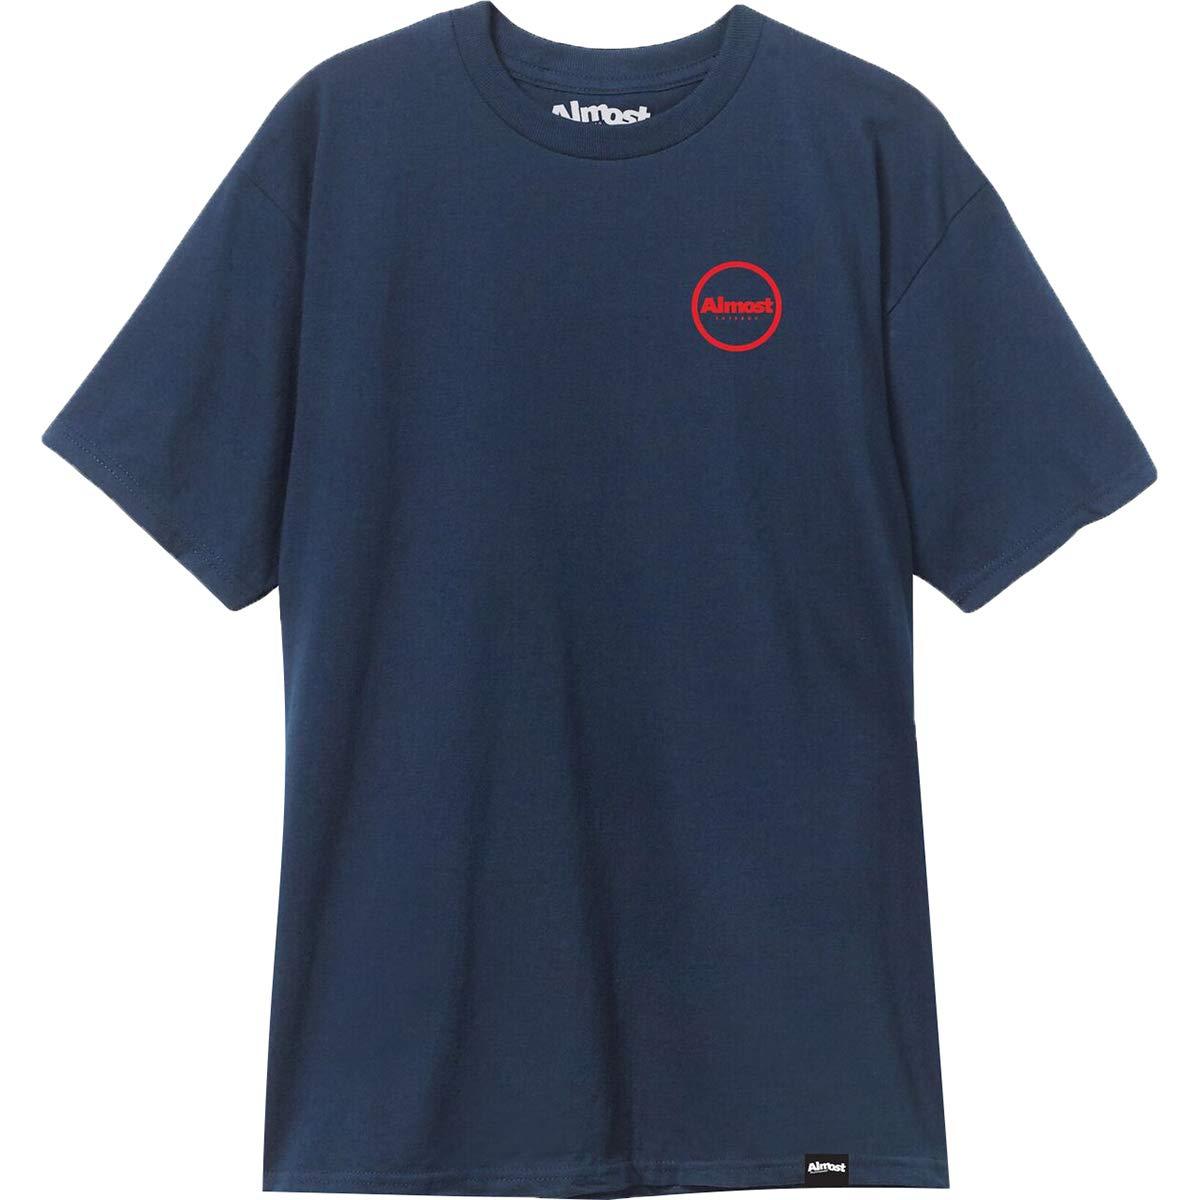 Almost Mens Apex Price Point Shirts